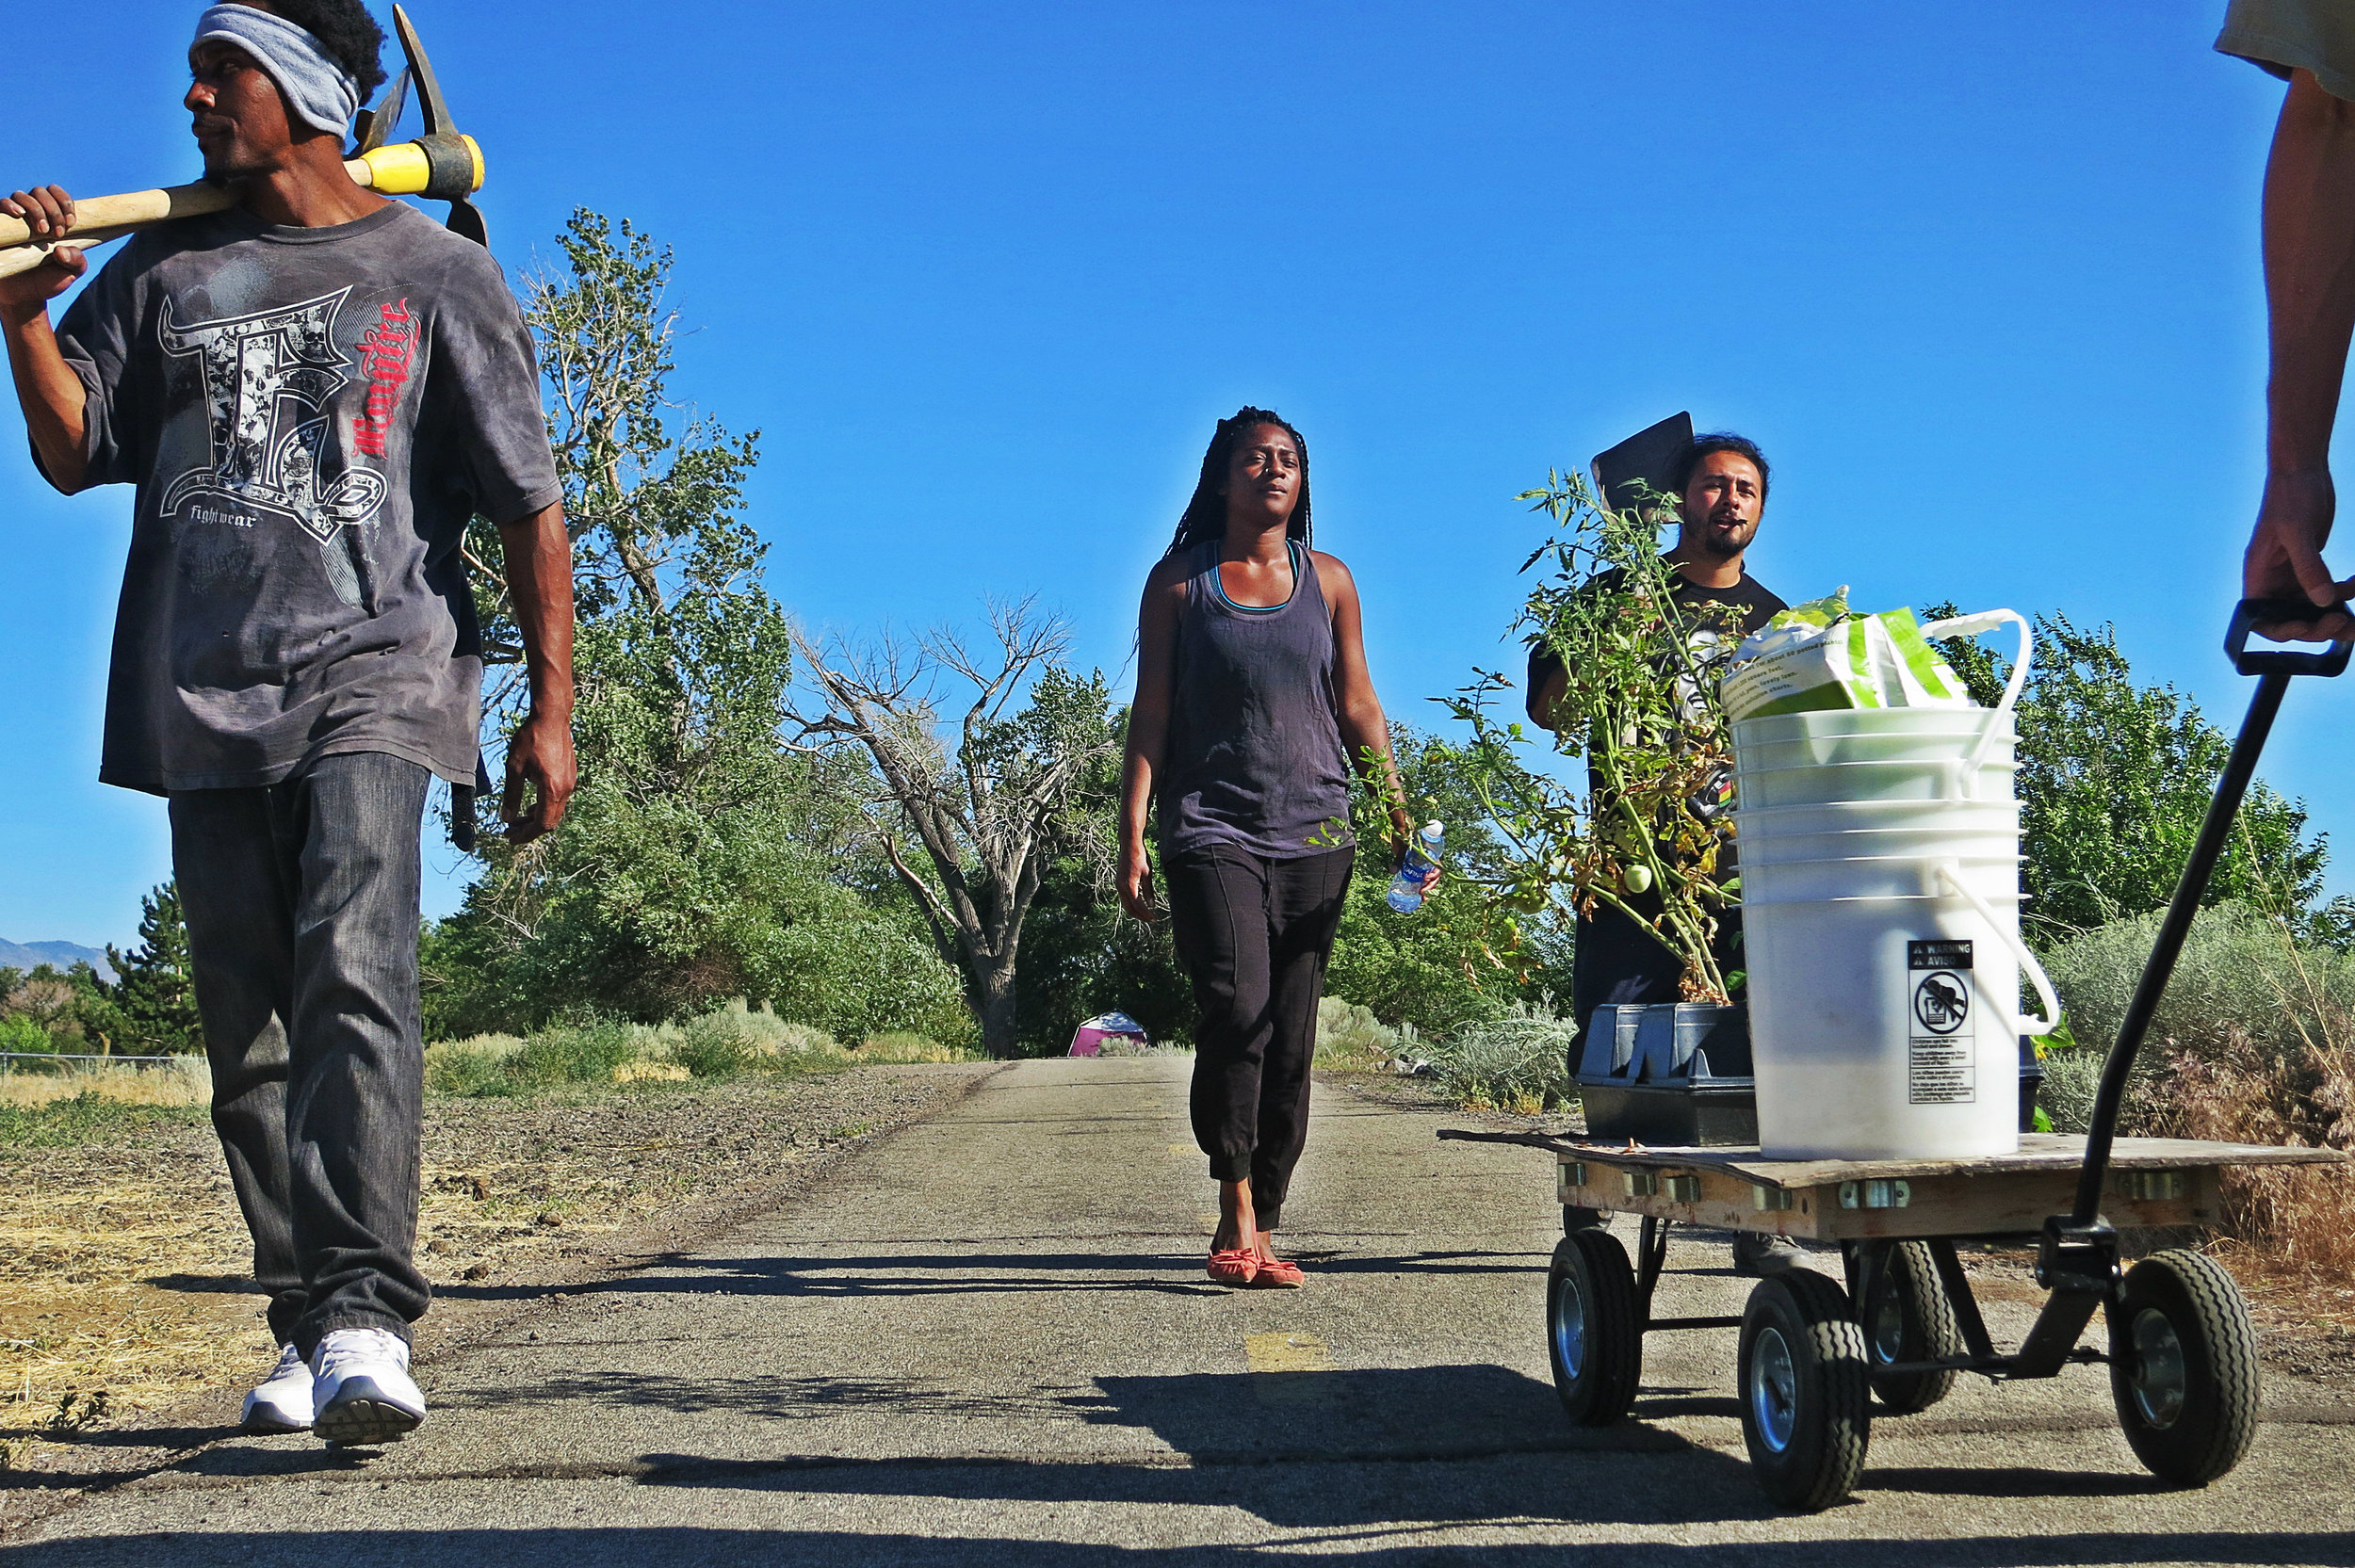 Niesha Jones (center) goes up and down the path along the Truckee River with other activists to help the homeless living there.